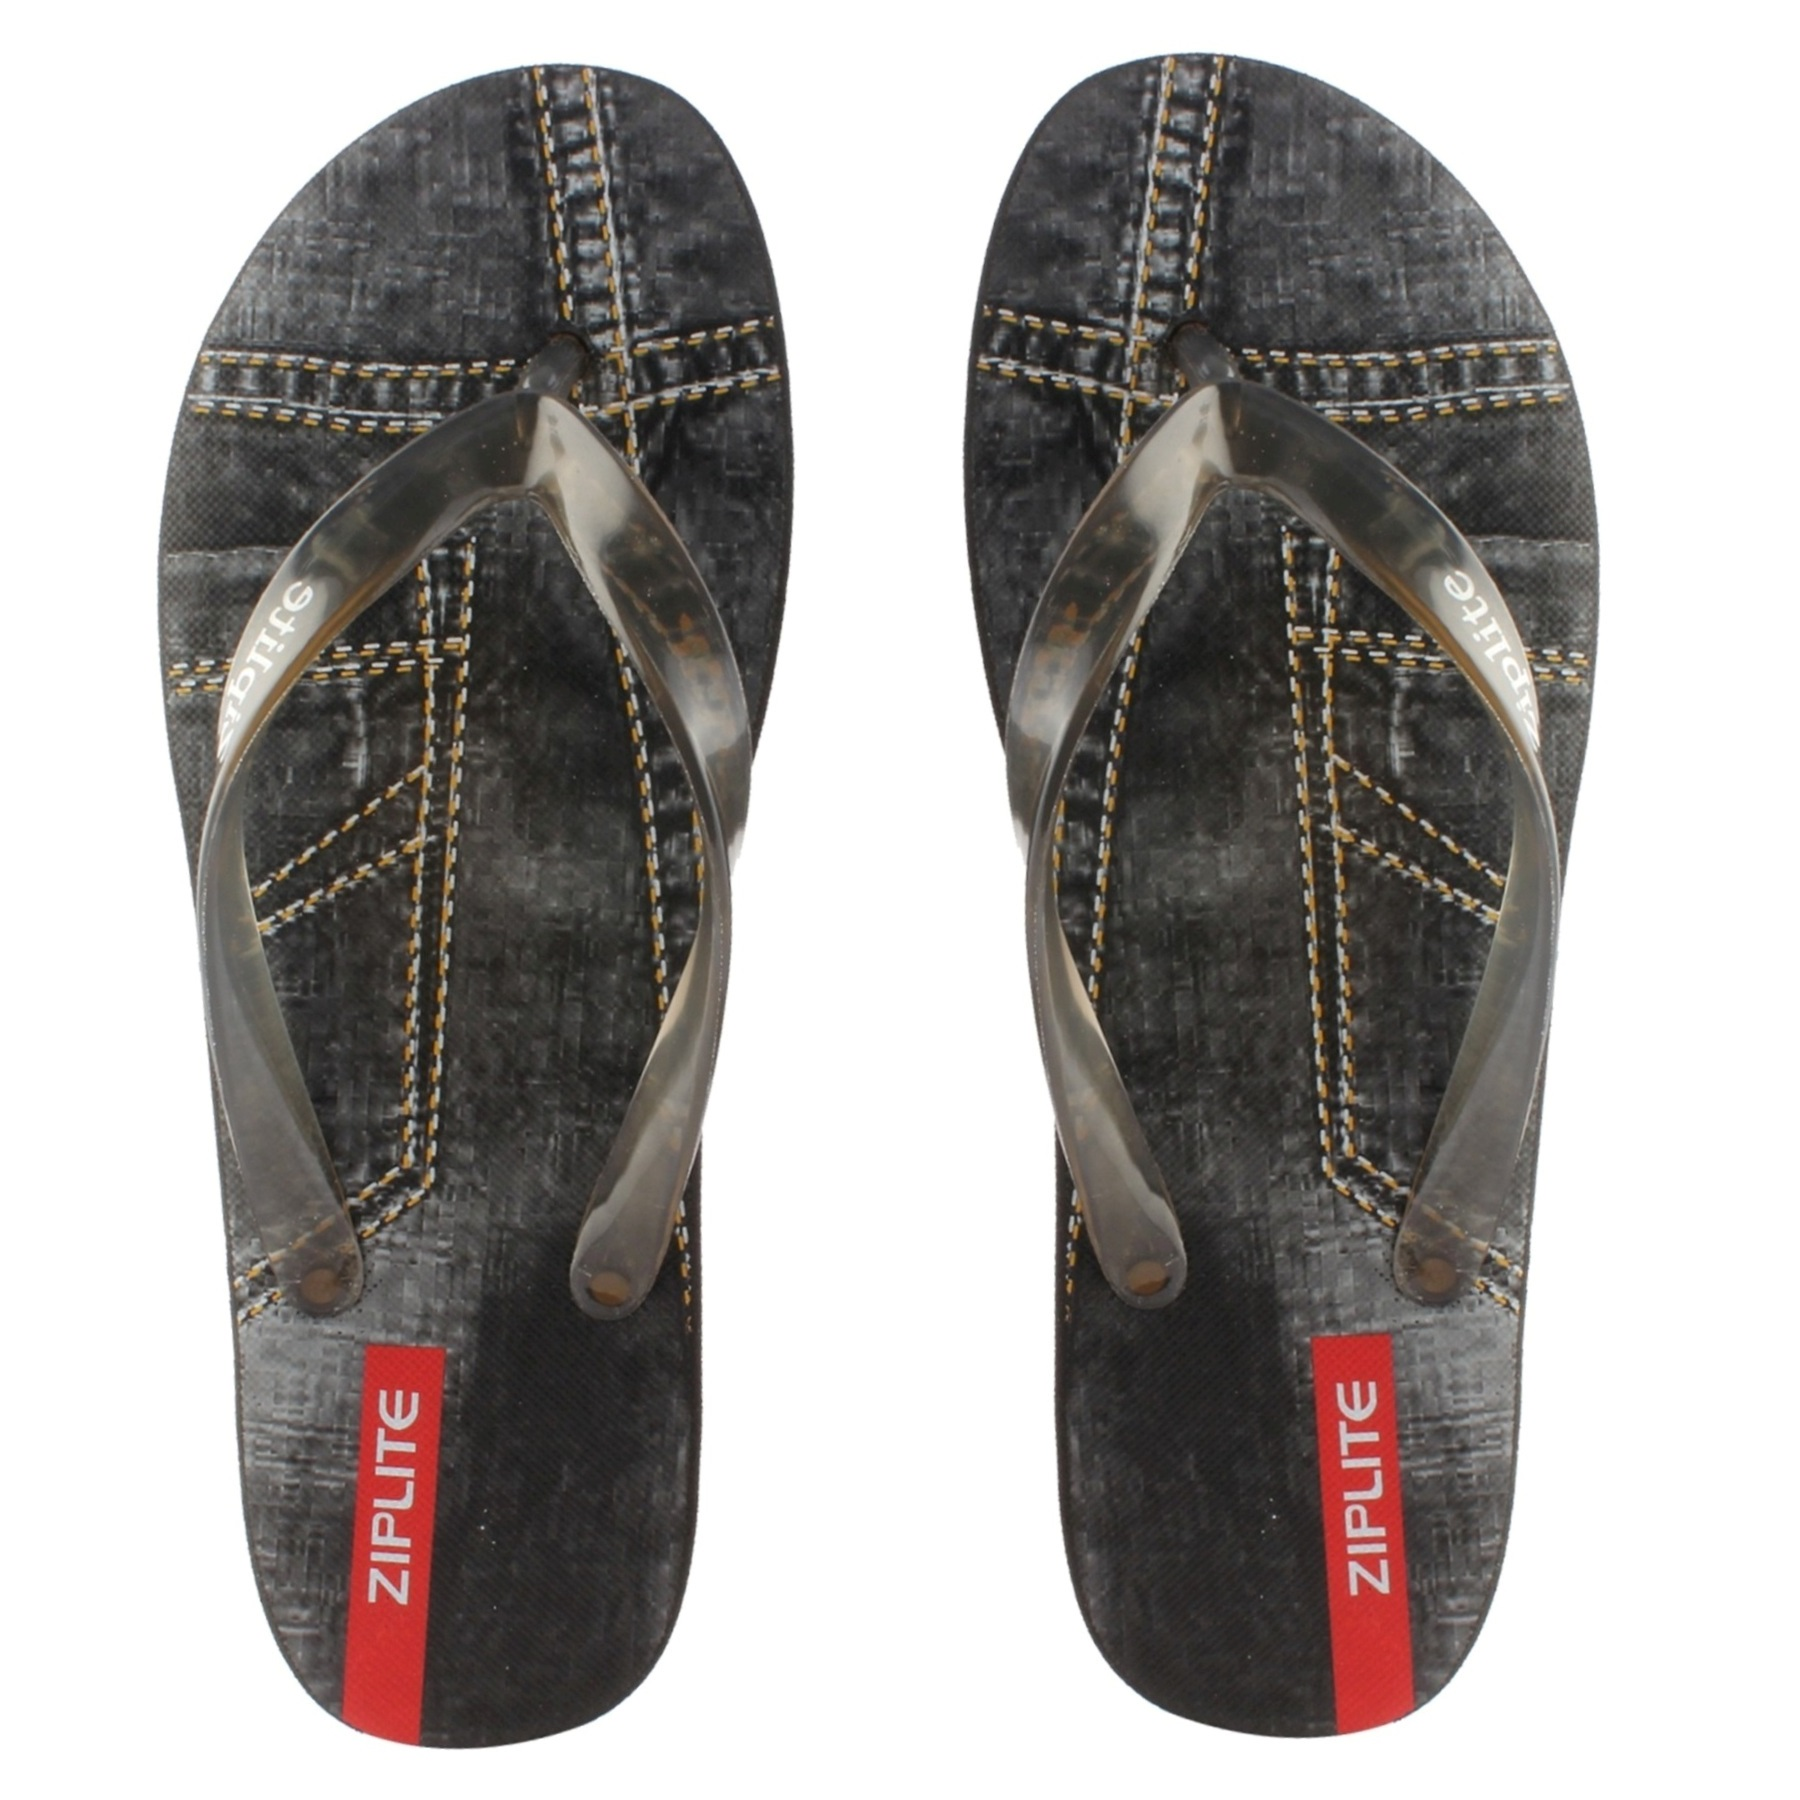 Ziplite Mens Eva Hawai Slippers